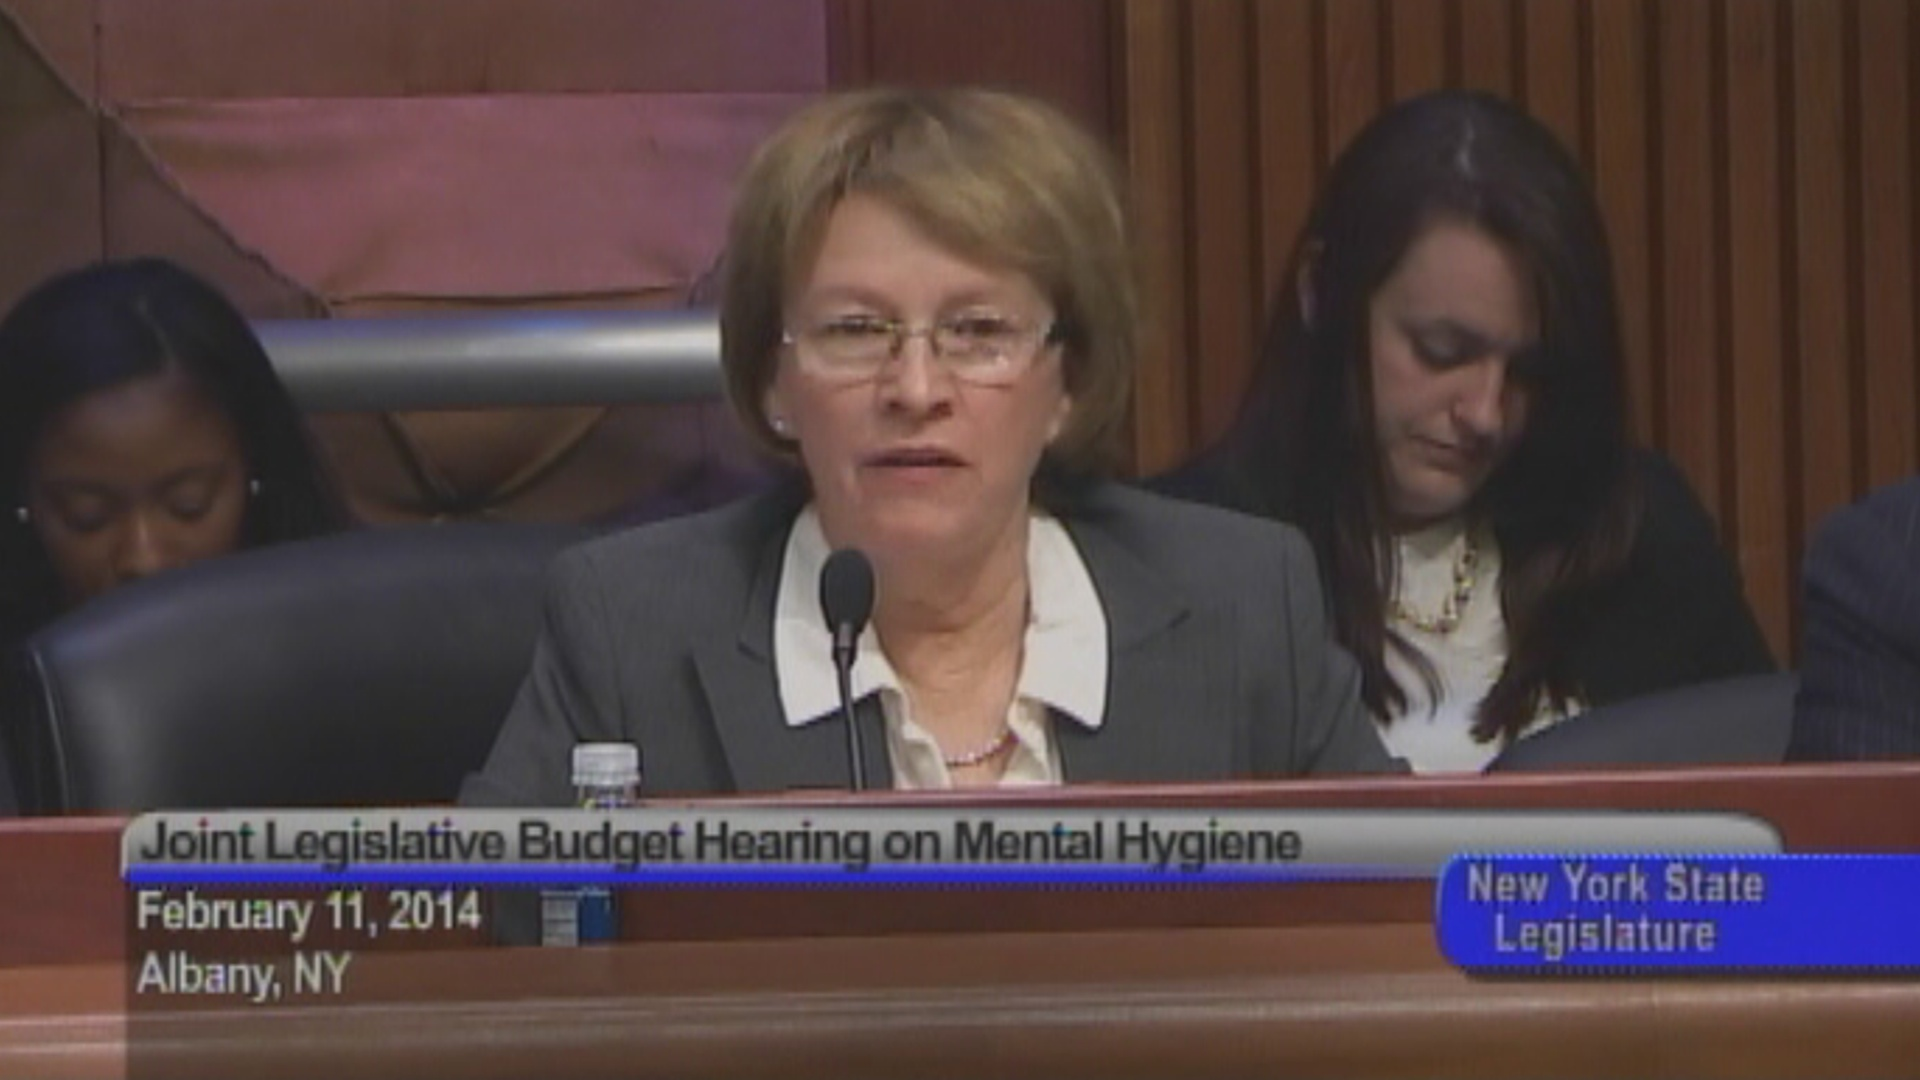 Mental Health Budget Hearing